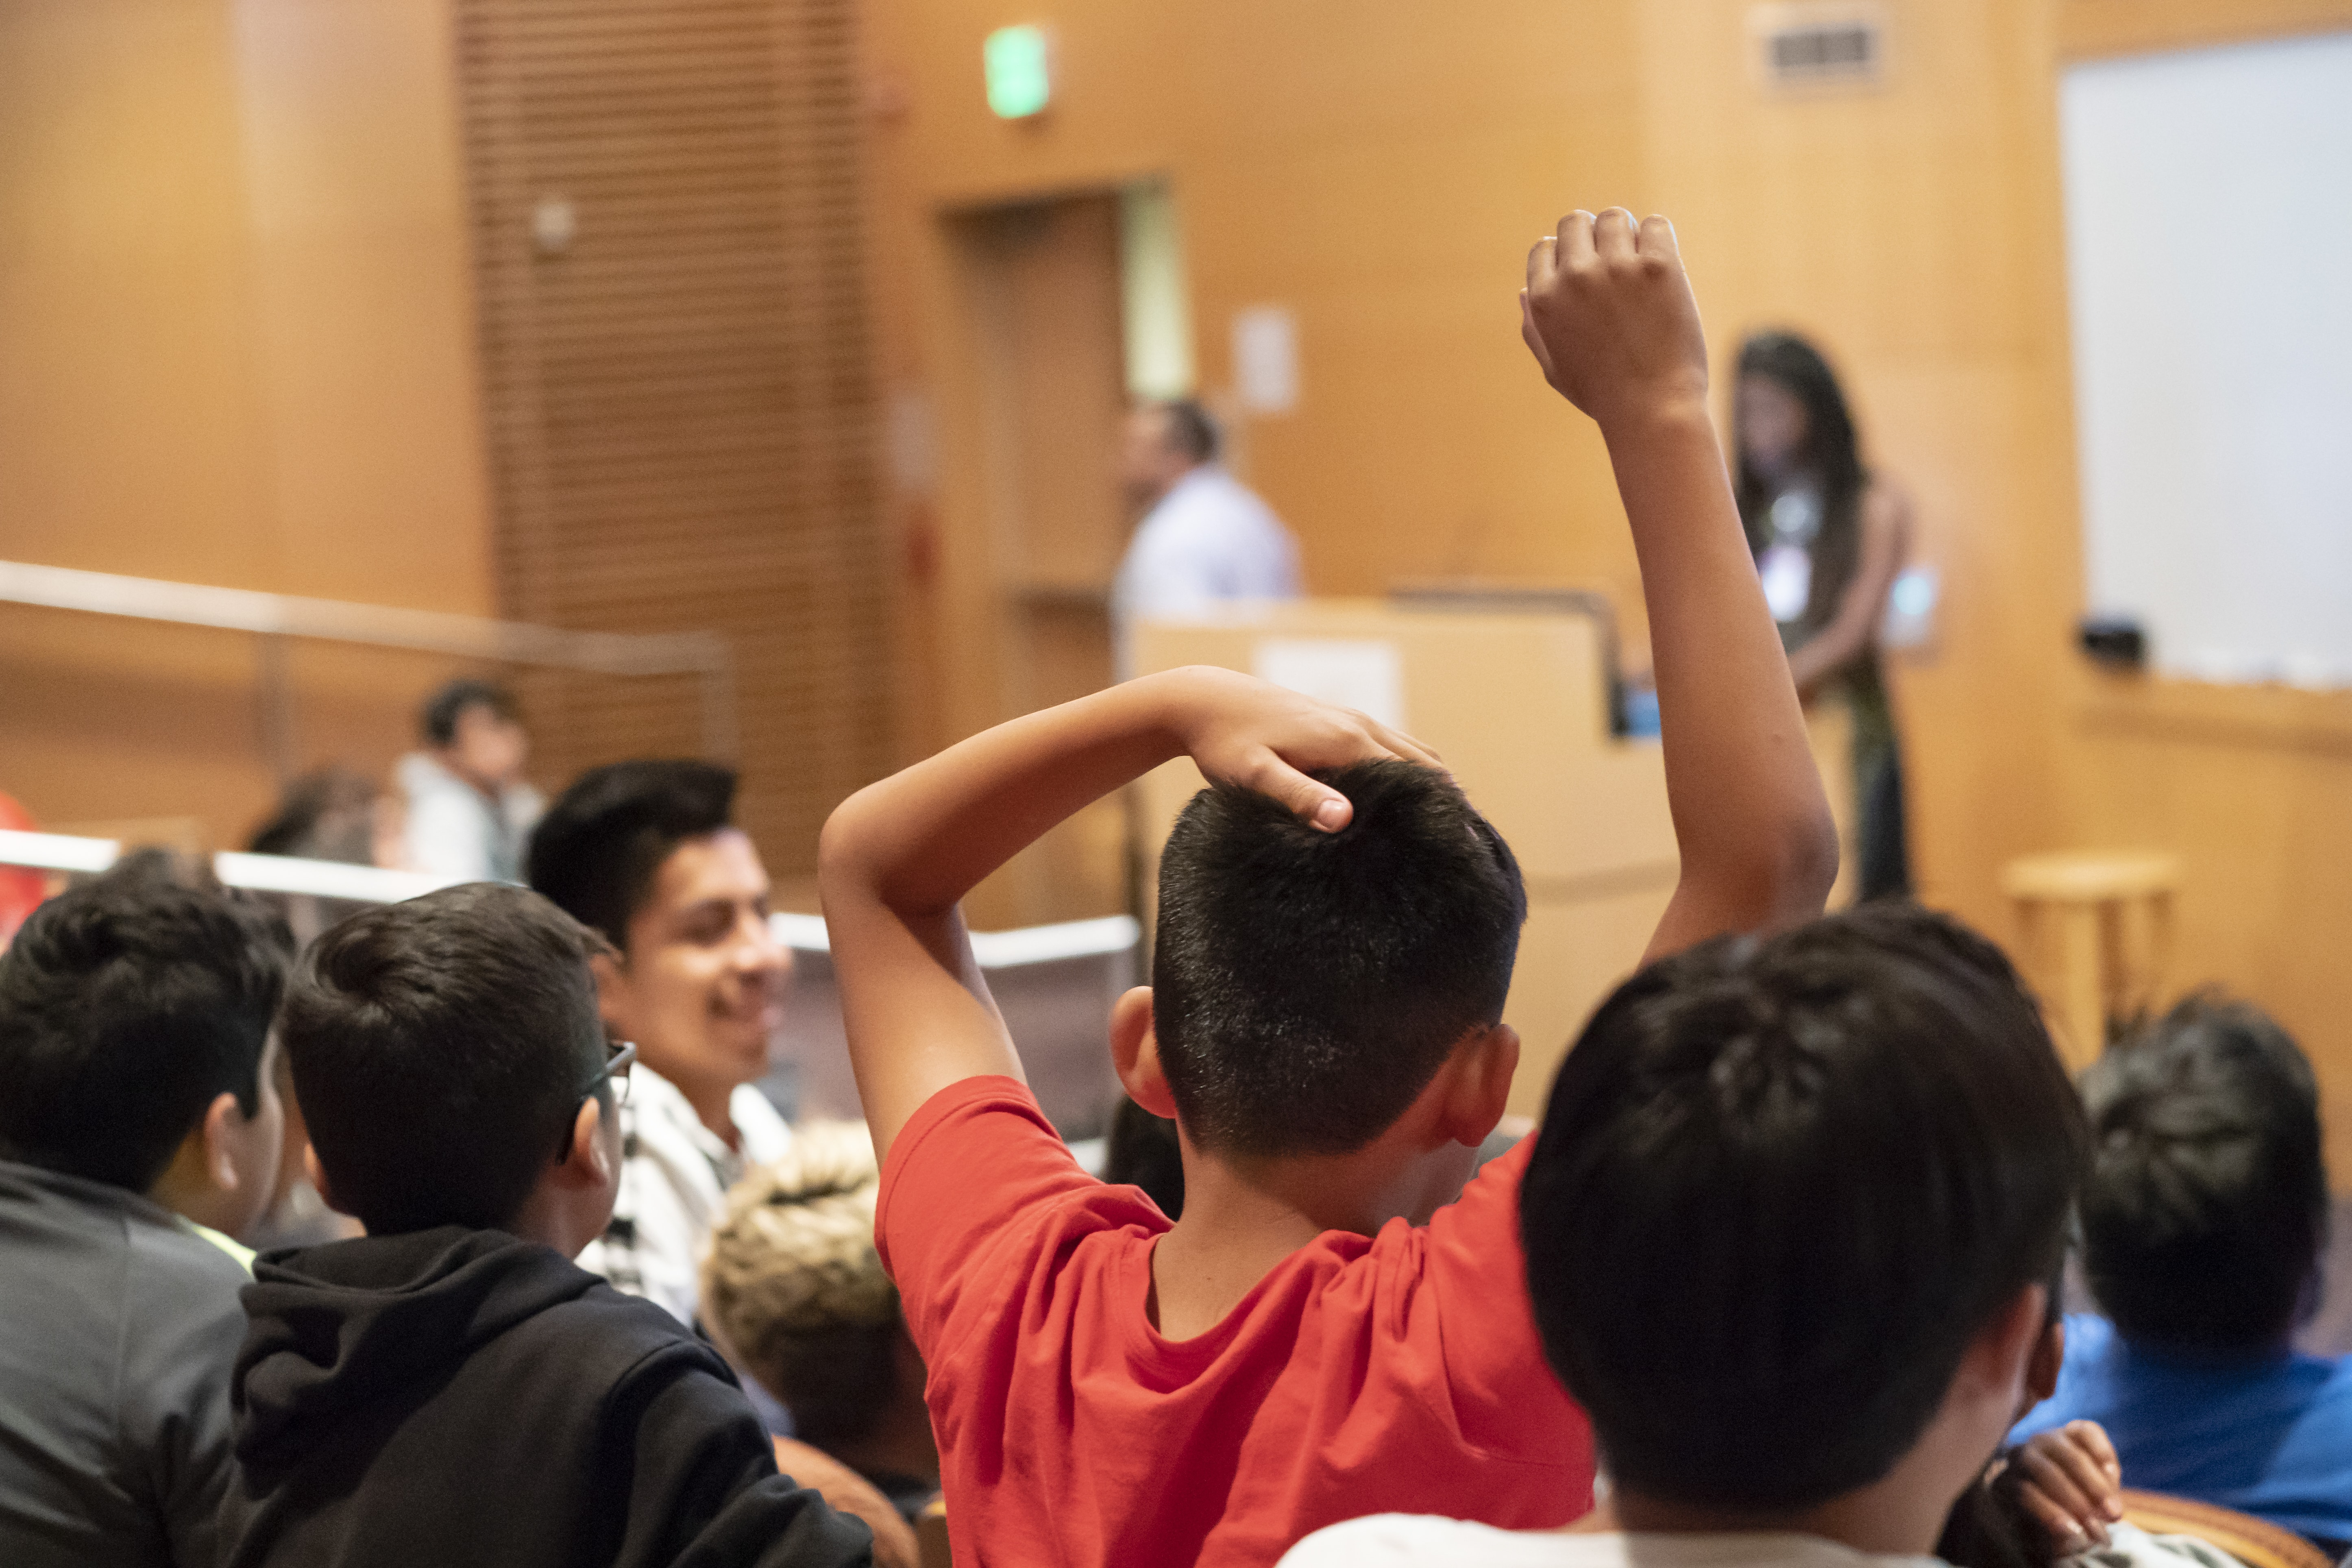 Student raises hand while listening to presentation about neurology